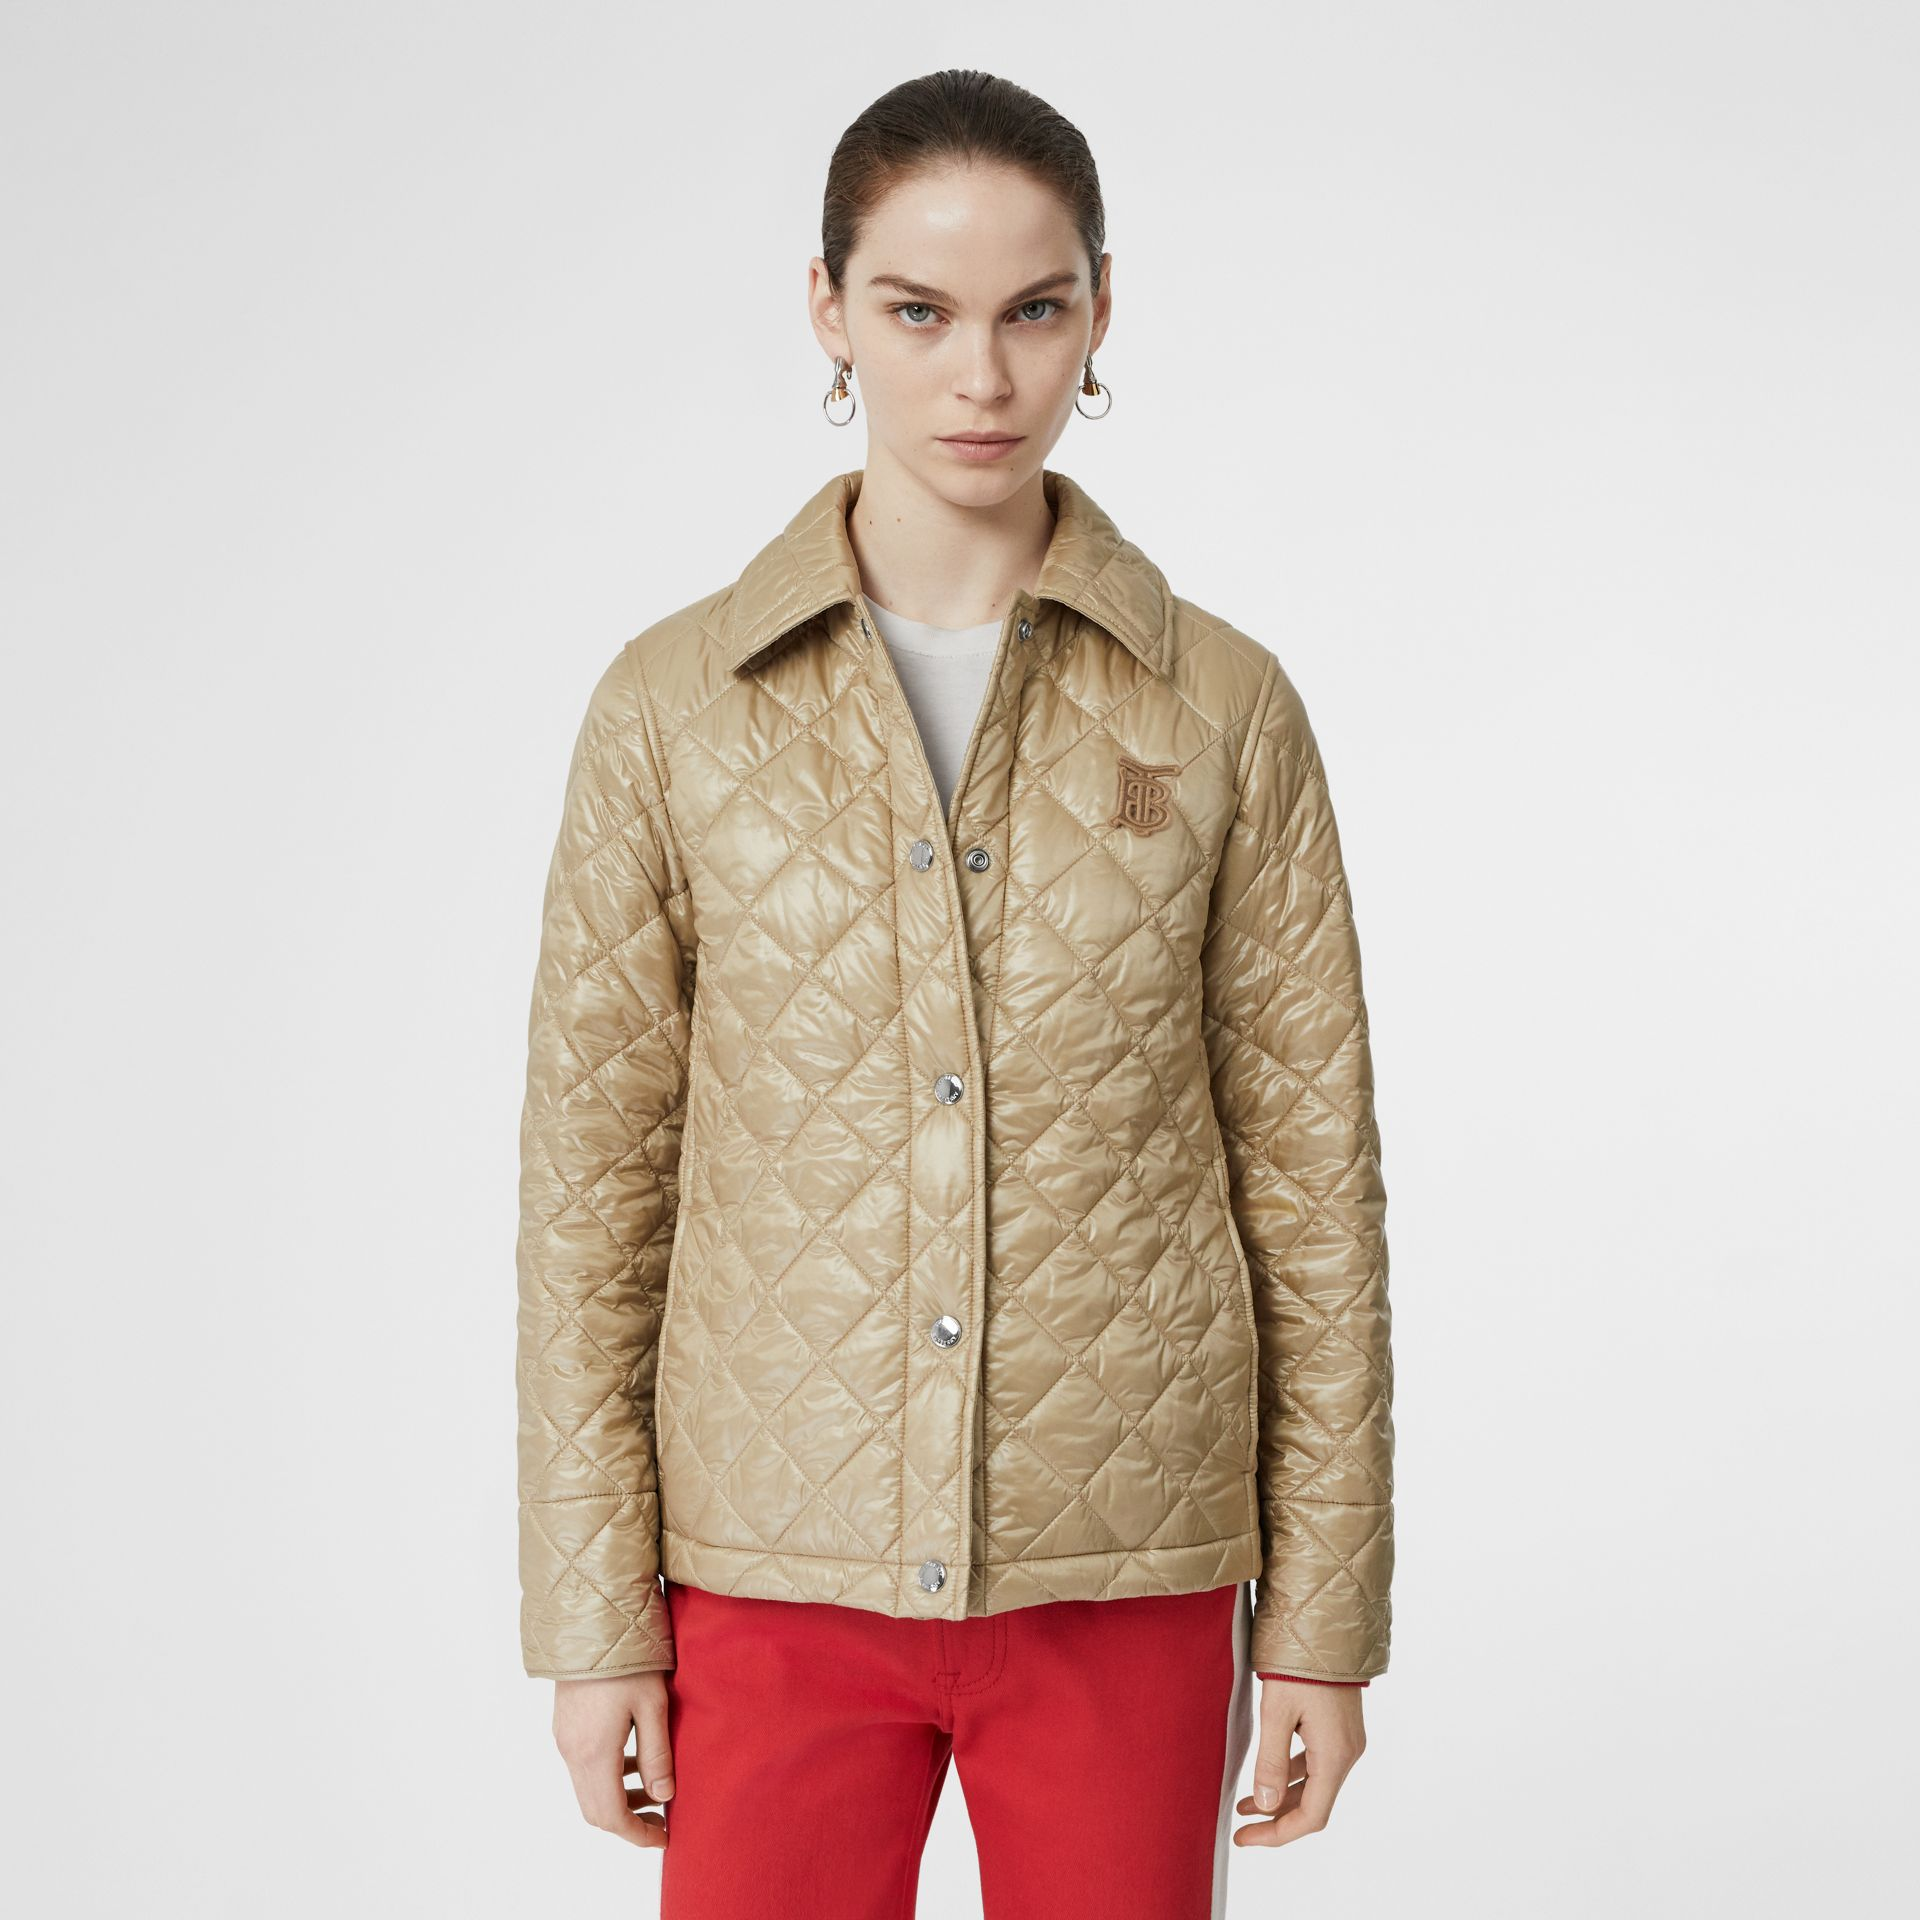 Monogram Motif Diamond Quilted Jacket in Honey - Women | Burberry United States - gallery image 5